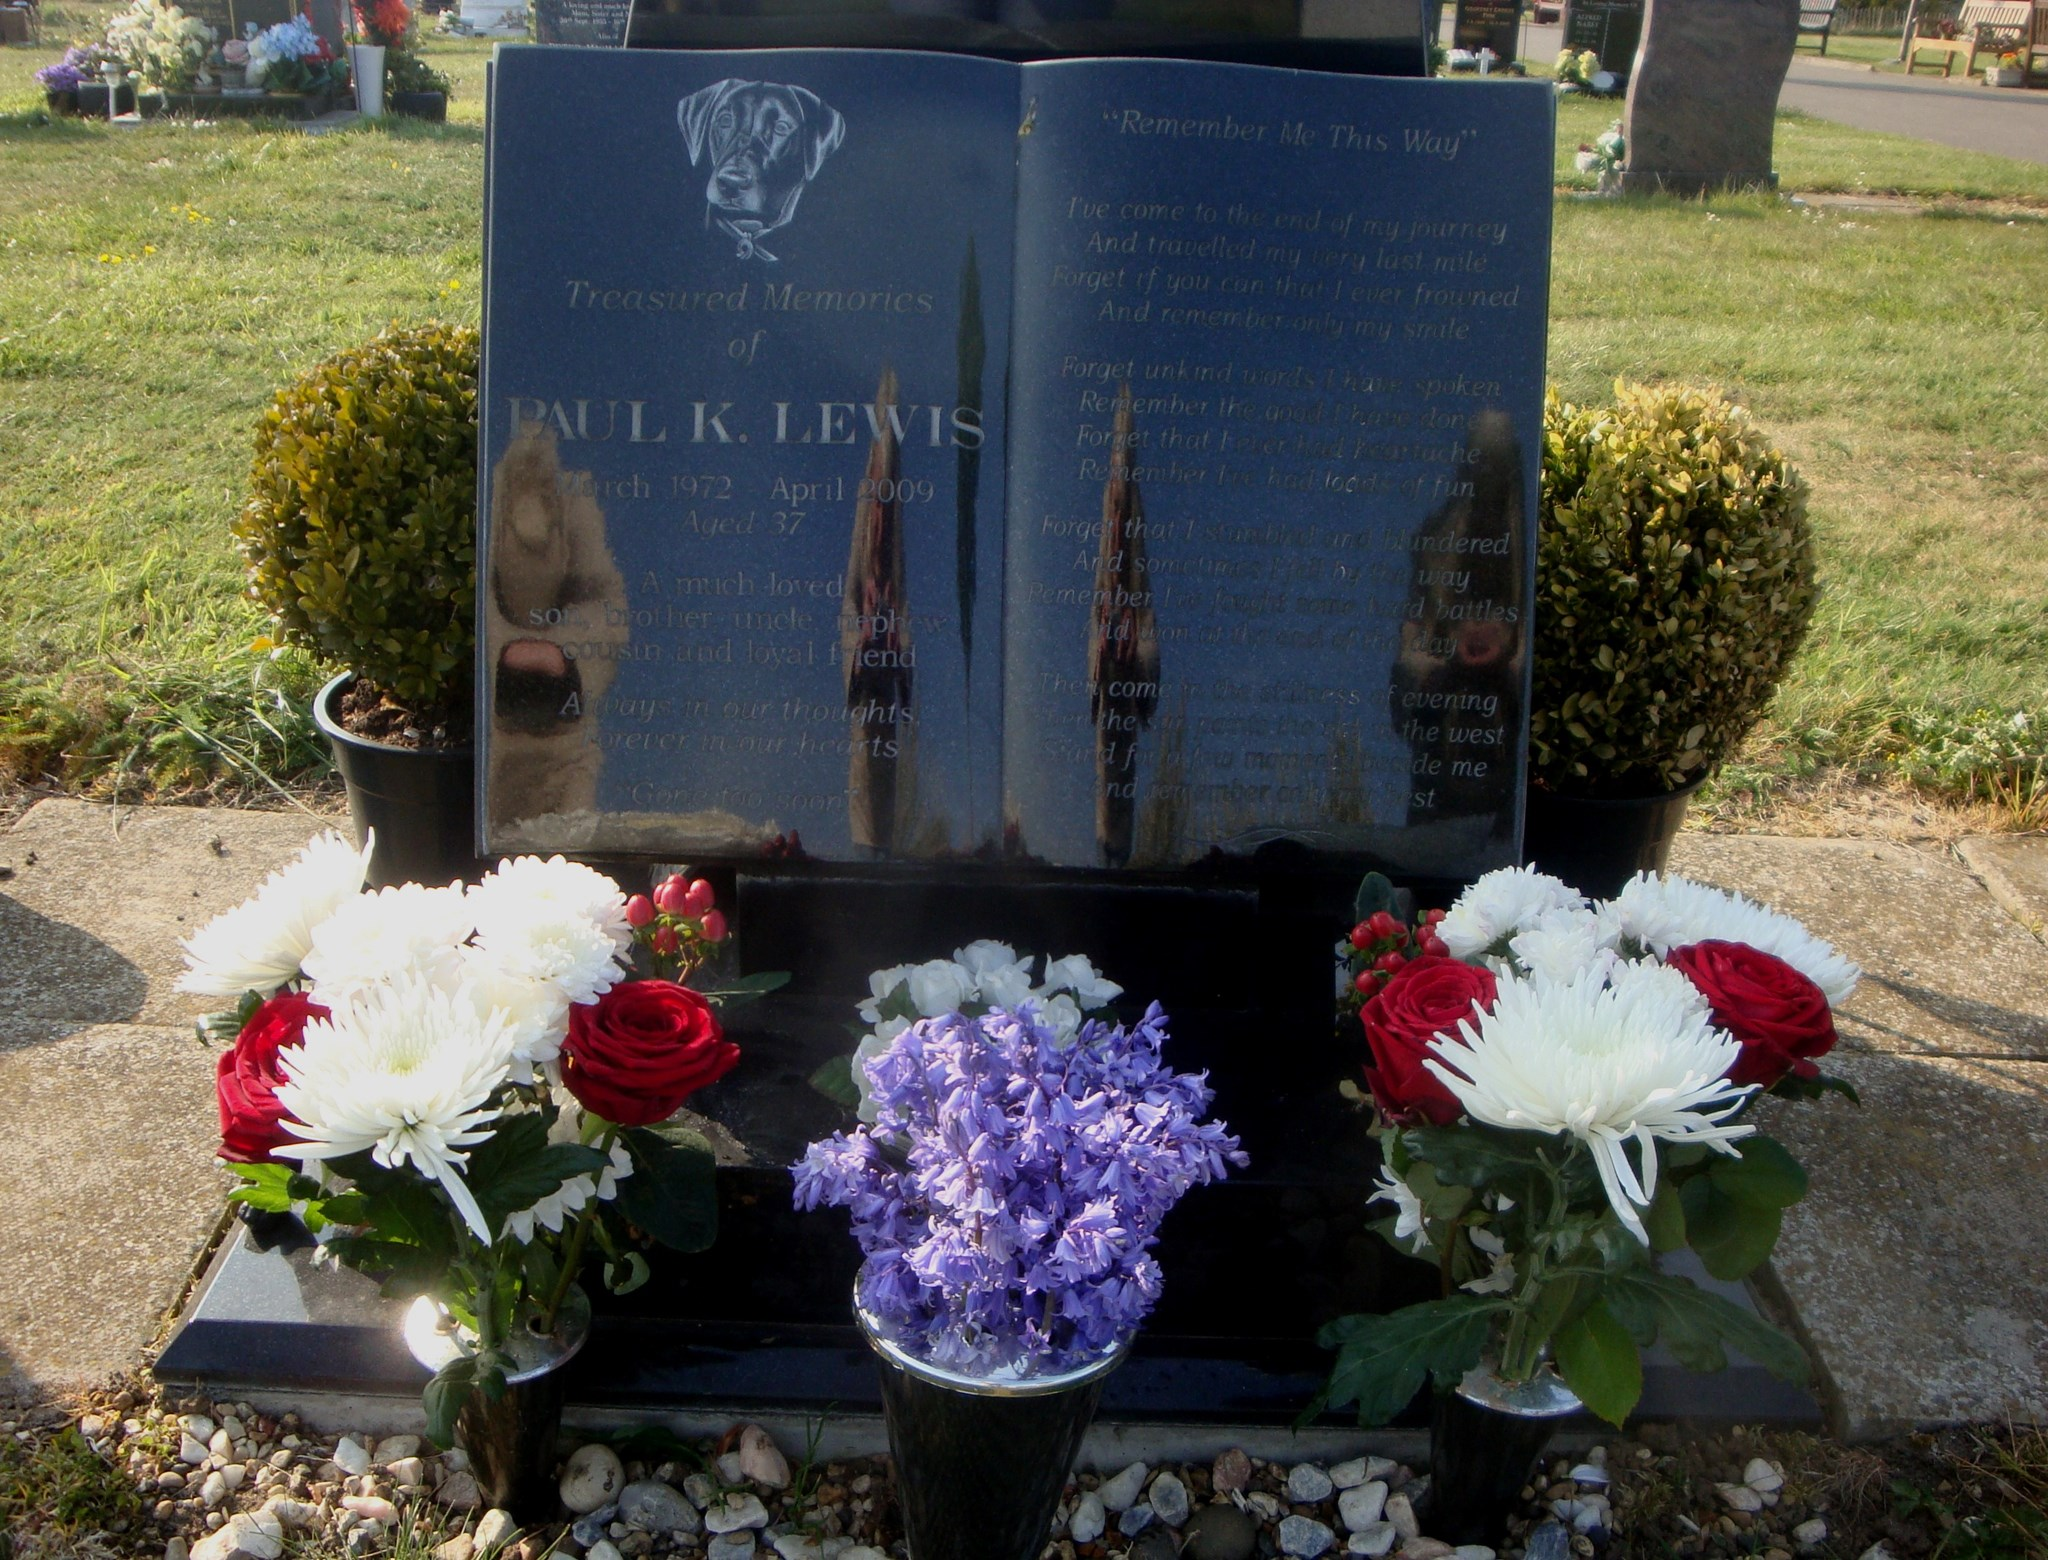 Paul's spot on St George's Day, 23rd April 2017 - beautiful flowers from Tracey